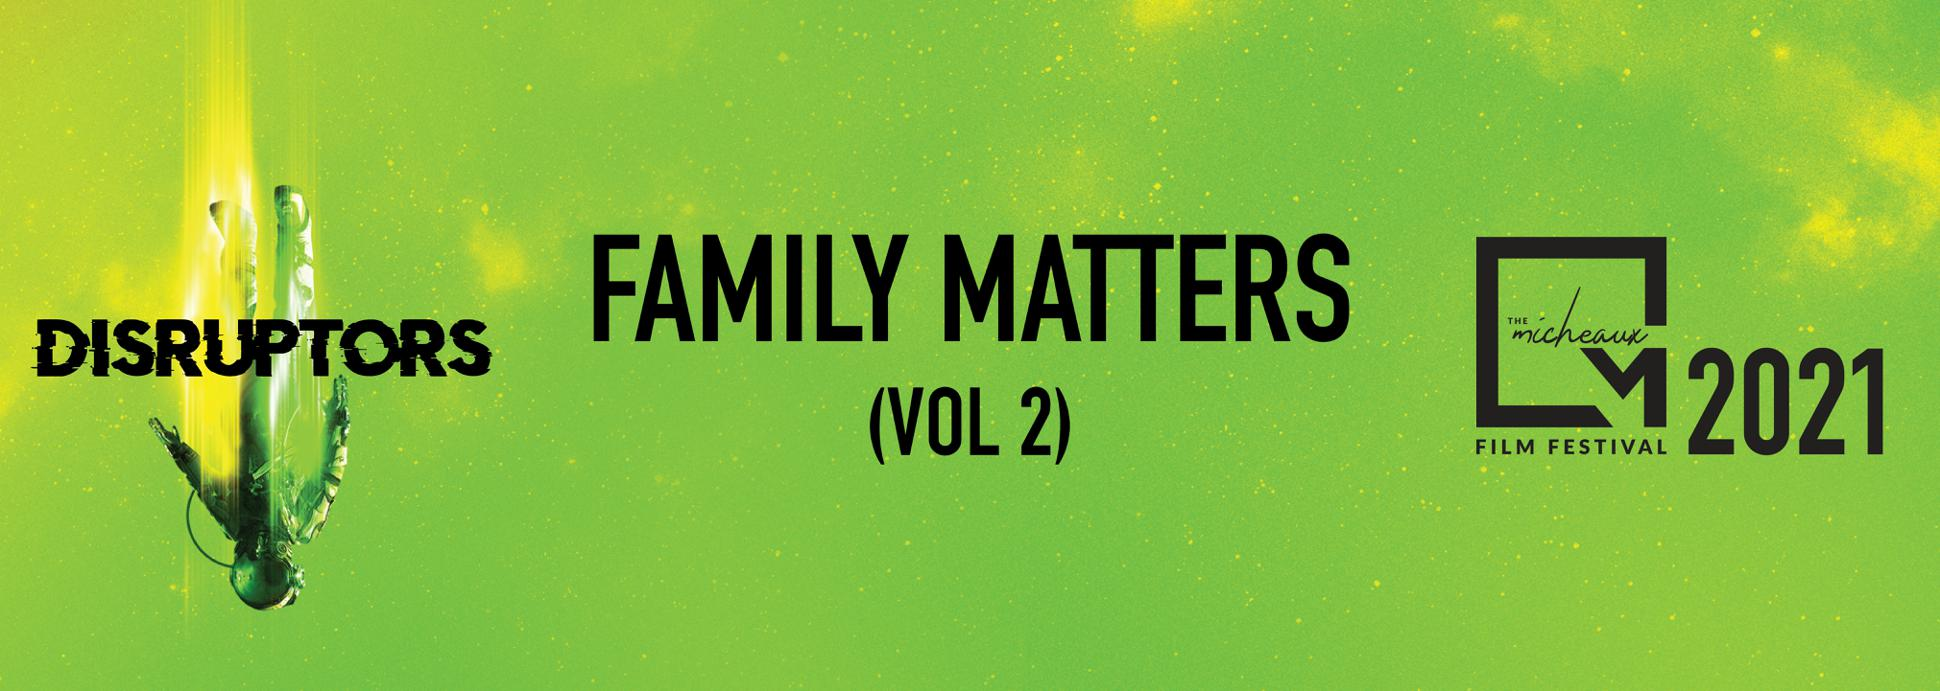 Family Matters (vol. 2)